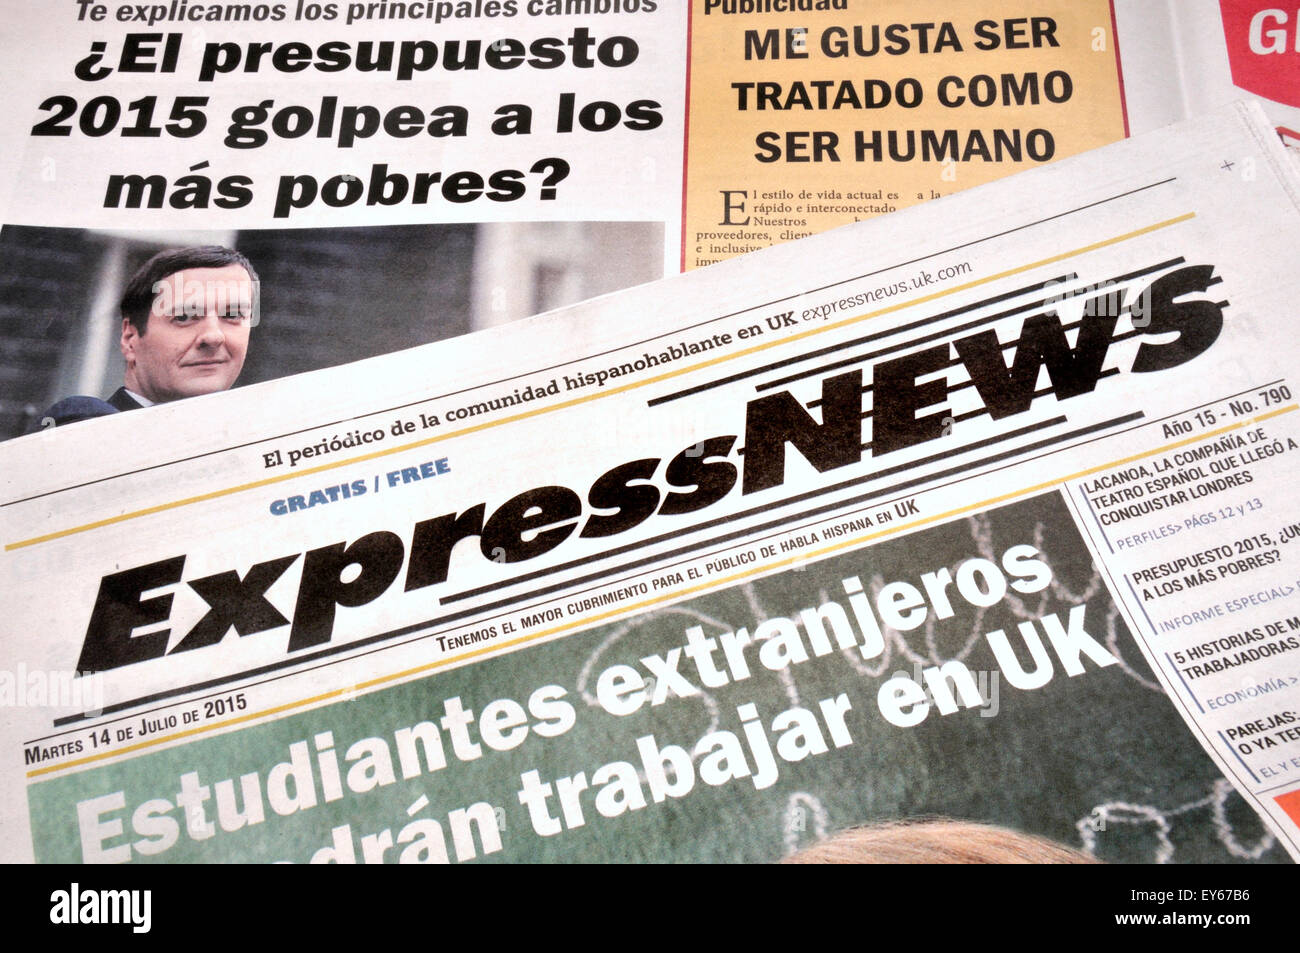 Express News - free Spanish newspaper available in London